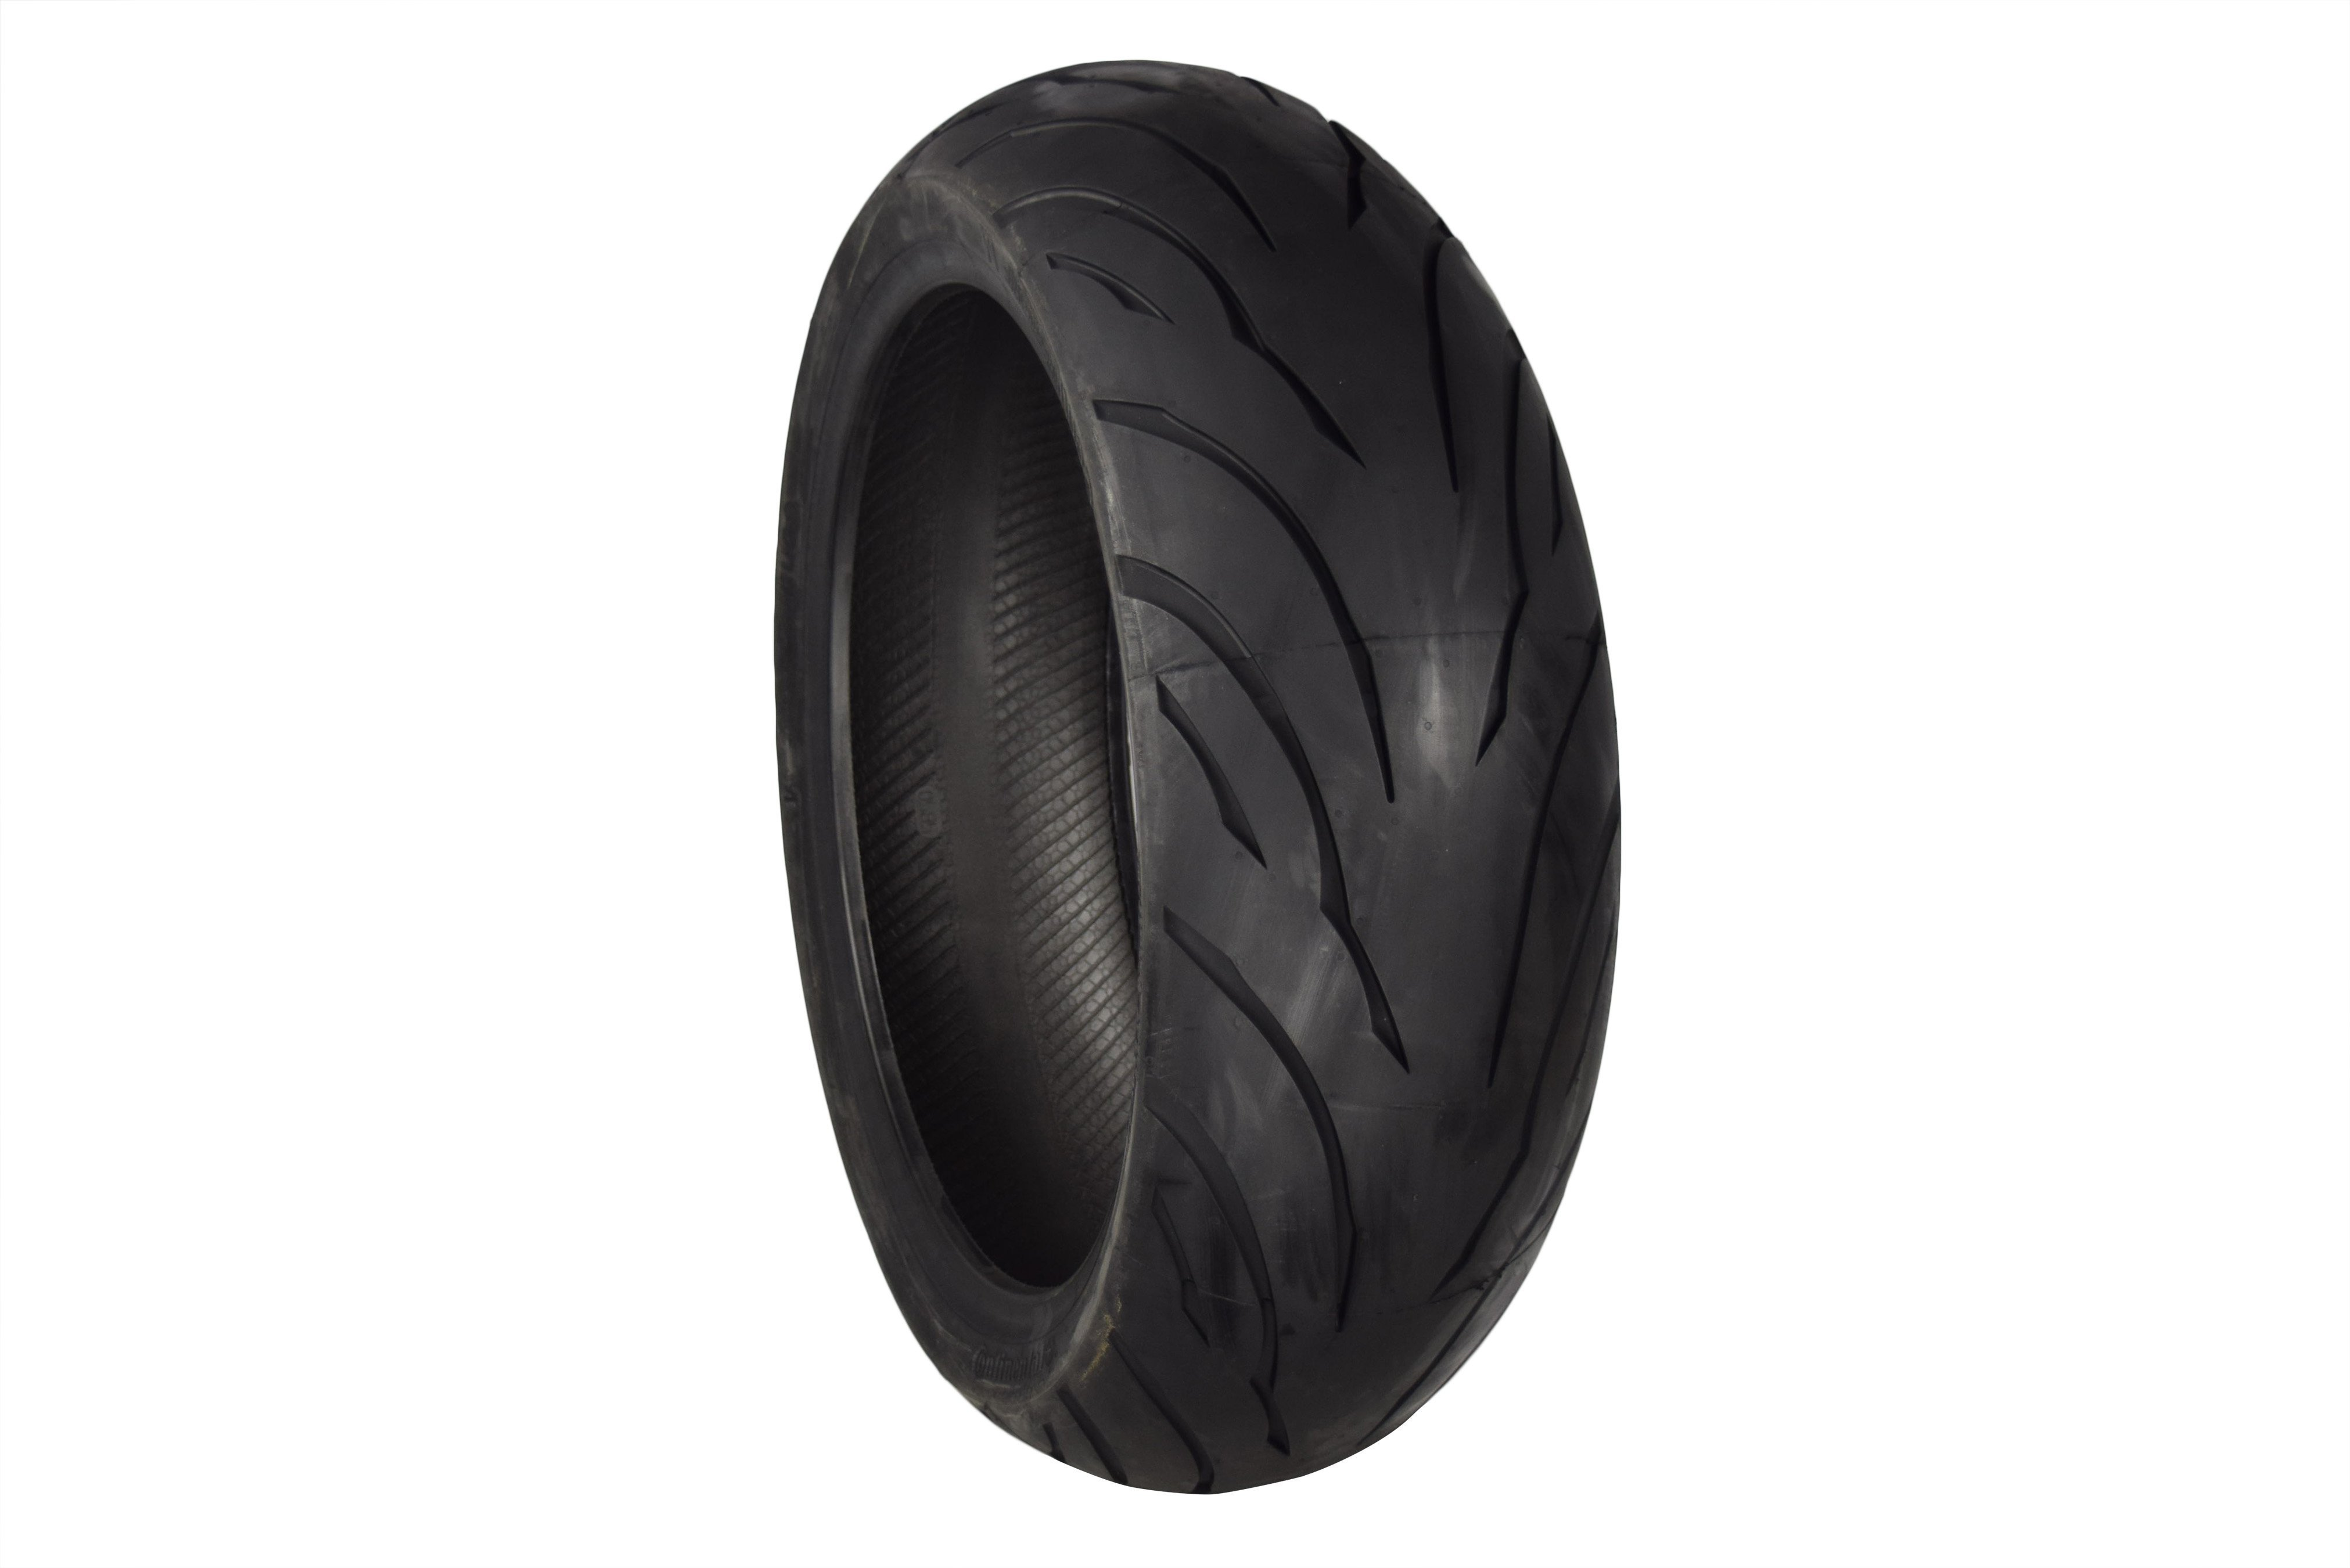 Continental-190-50-17-Motorcycle-Tire-Rear-Single-Tire-image-1